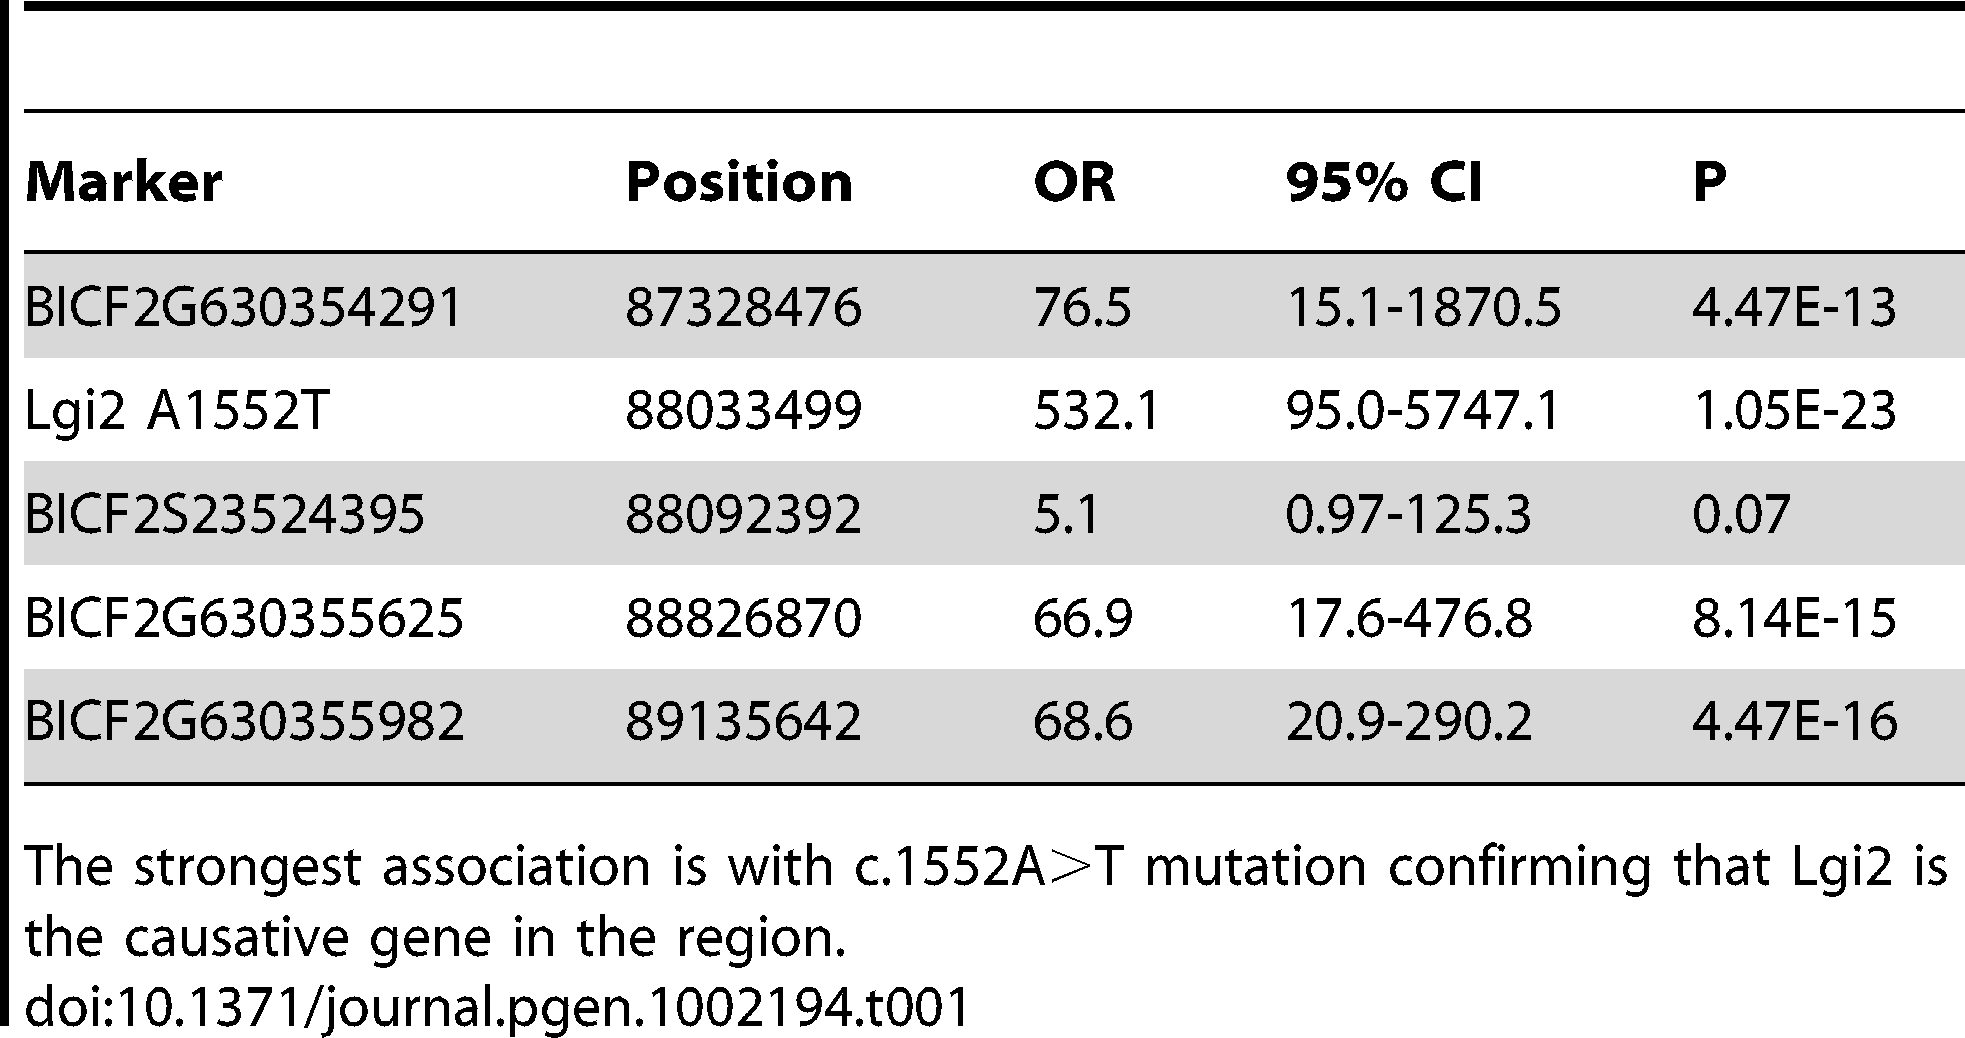 Four highly-associated SNPs spread across the linked 1.7 Mb homozygosity region, together with the c.1552A>T mutation, were genotyped and tested for association from 28 BFJE cases and 112 healthy controls.